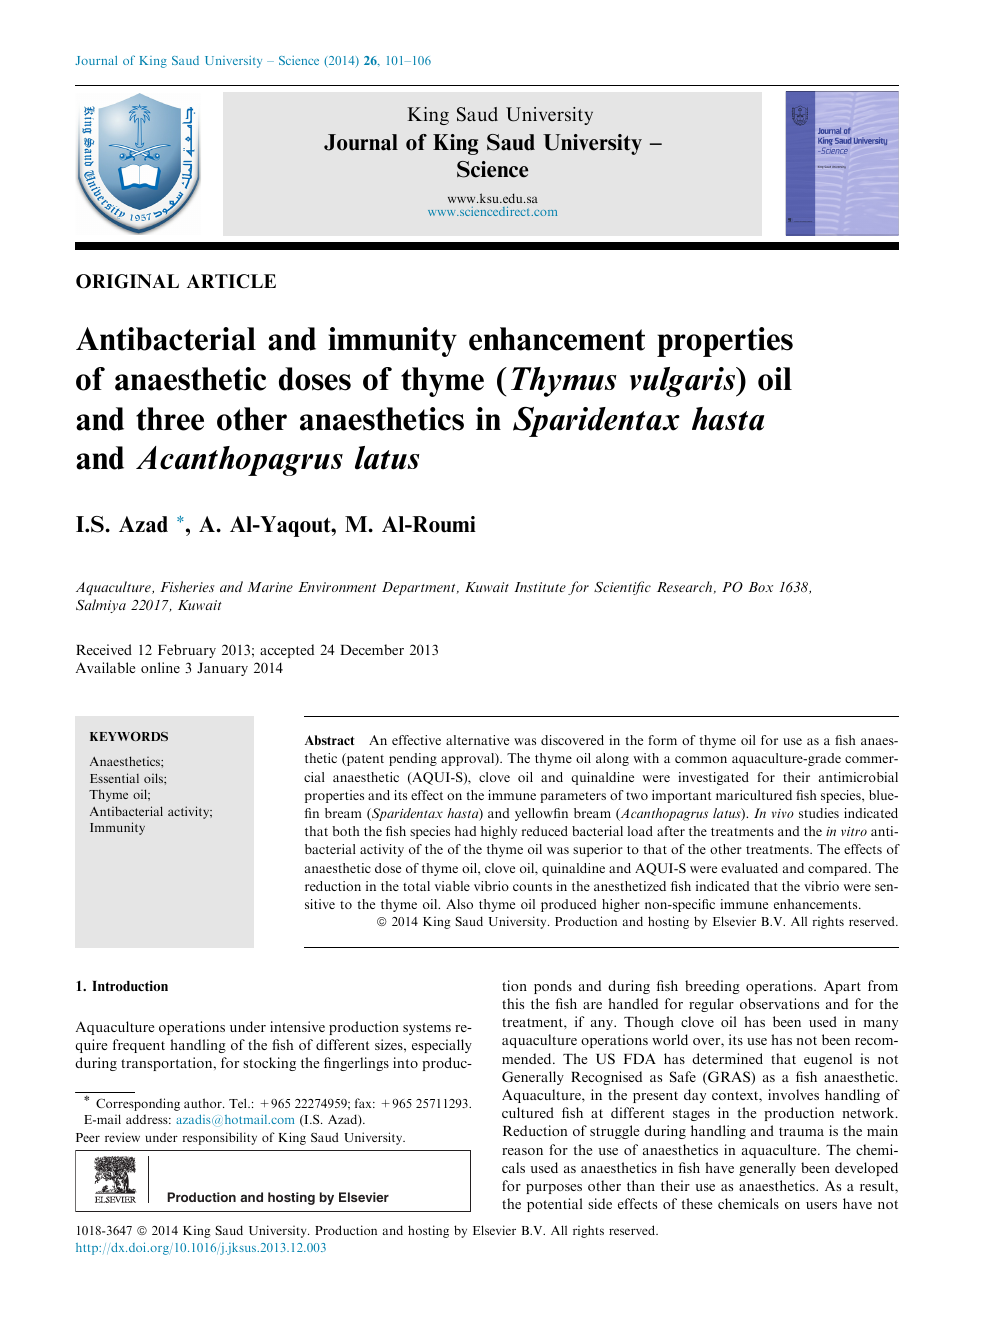 Antibacterial and immunity enhancement properties of